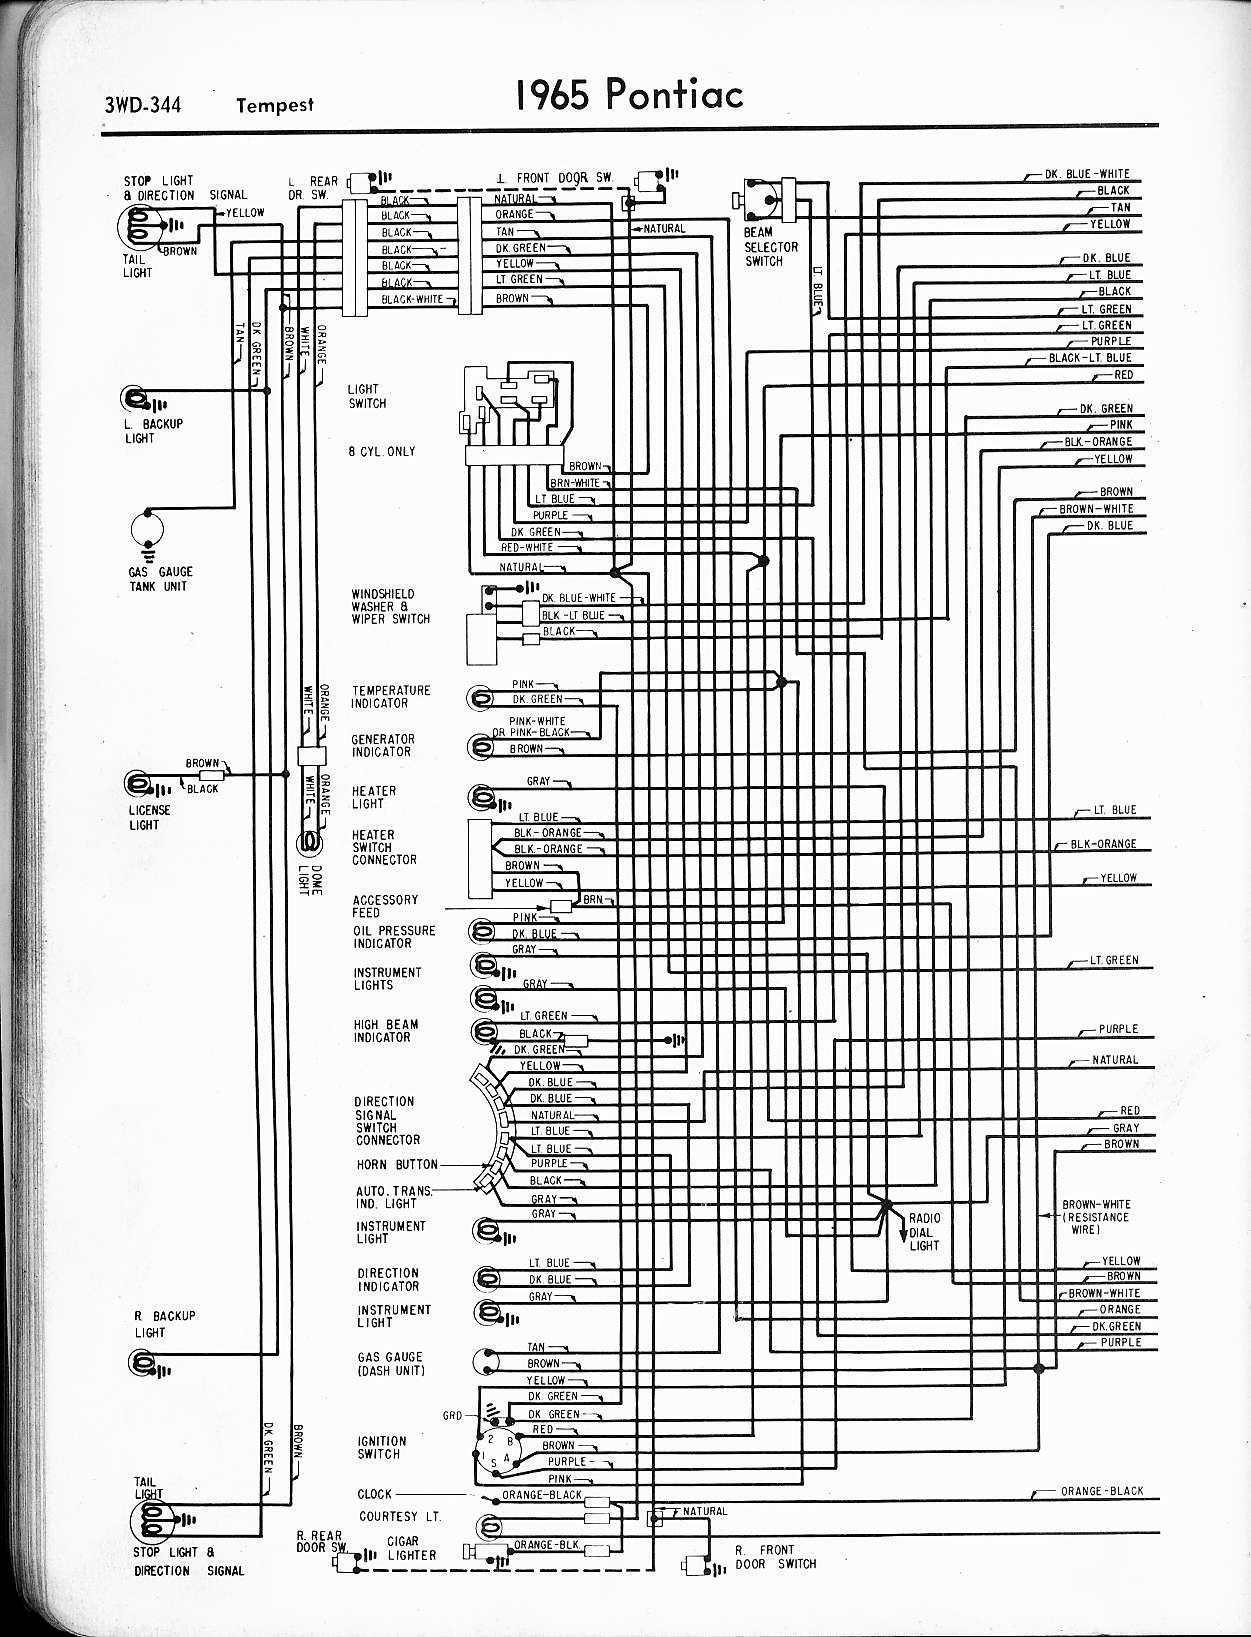 1965 gm stereo wiring diagram wiring diagram mega 1965 pontiac gto wiring diagram wiring diagrams 1965 gm stereo wiring diagram